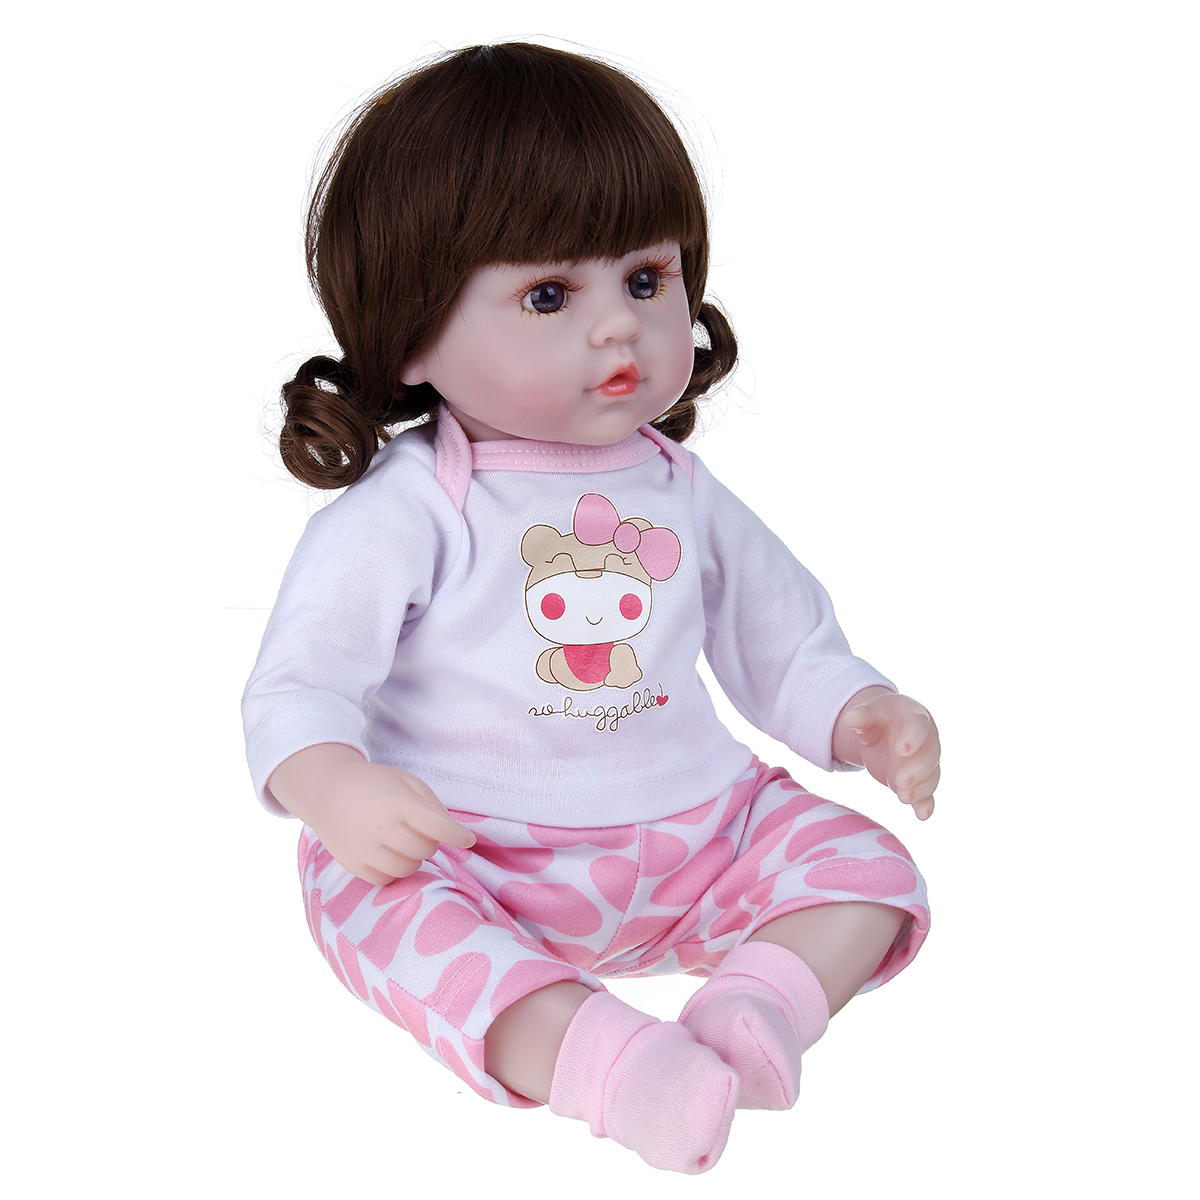 42CM Multi-optional Simulation Silicone Vinyl Lifelike Realistic Reborn Newborn Baby Doll Toy with Cloth Suit for Kids Birthday Gift